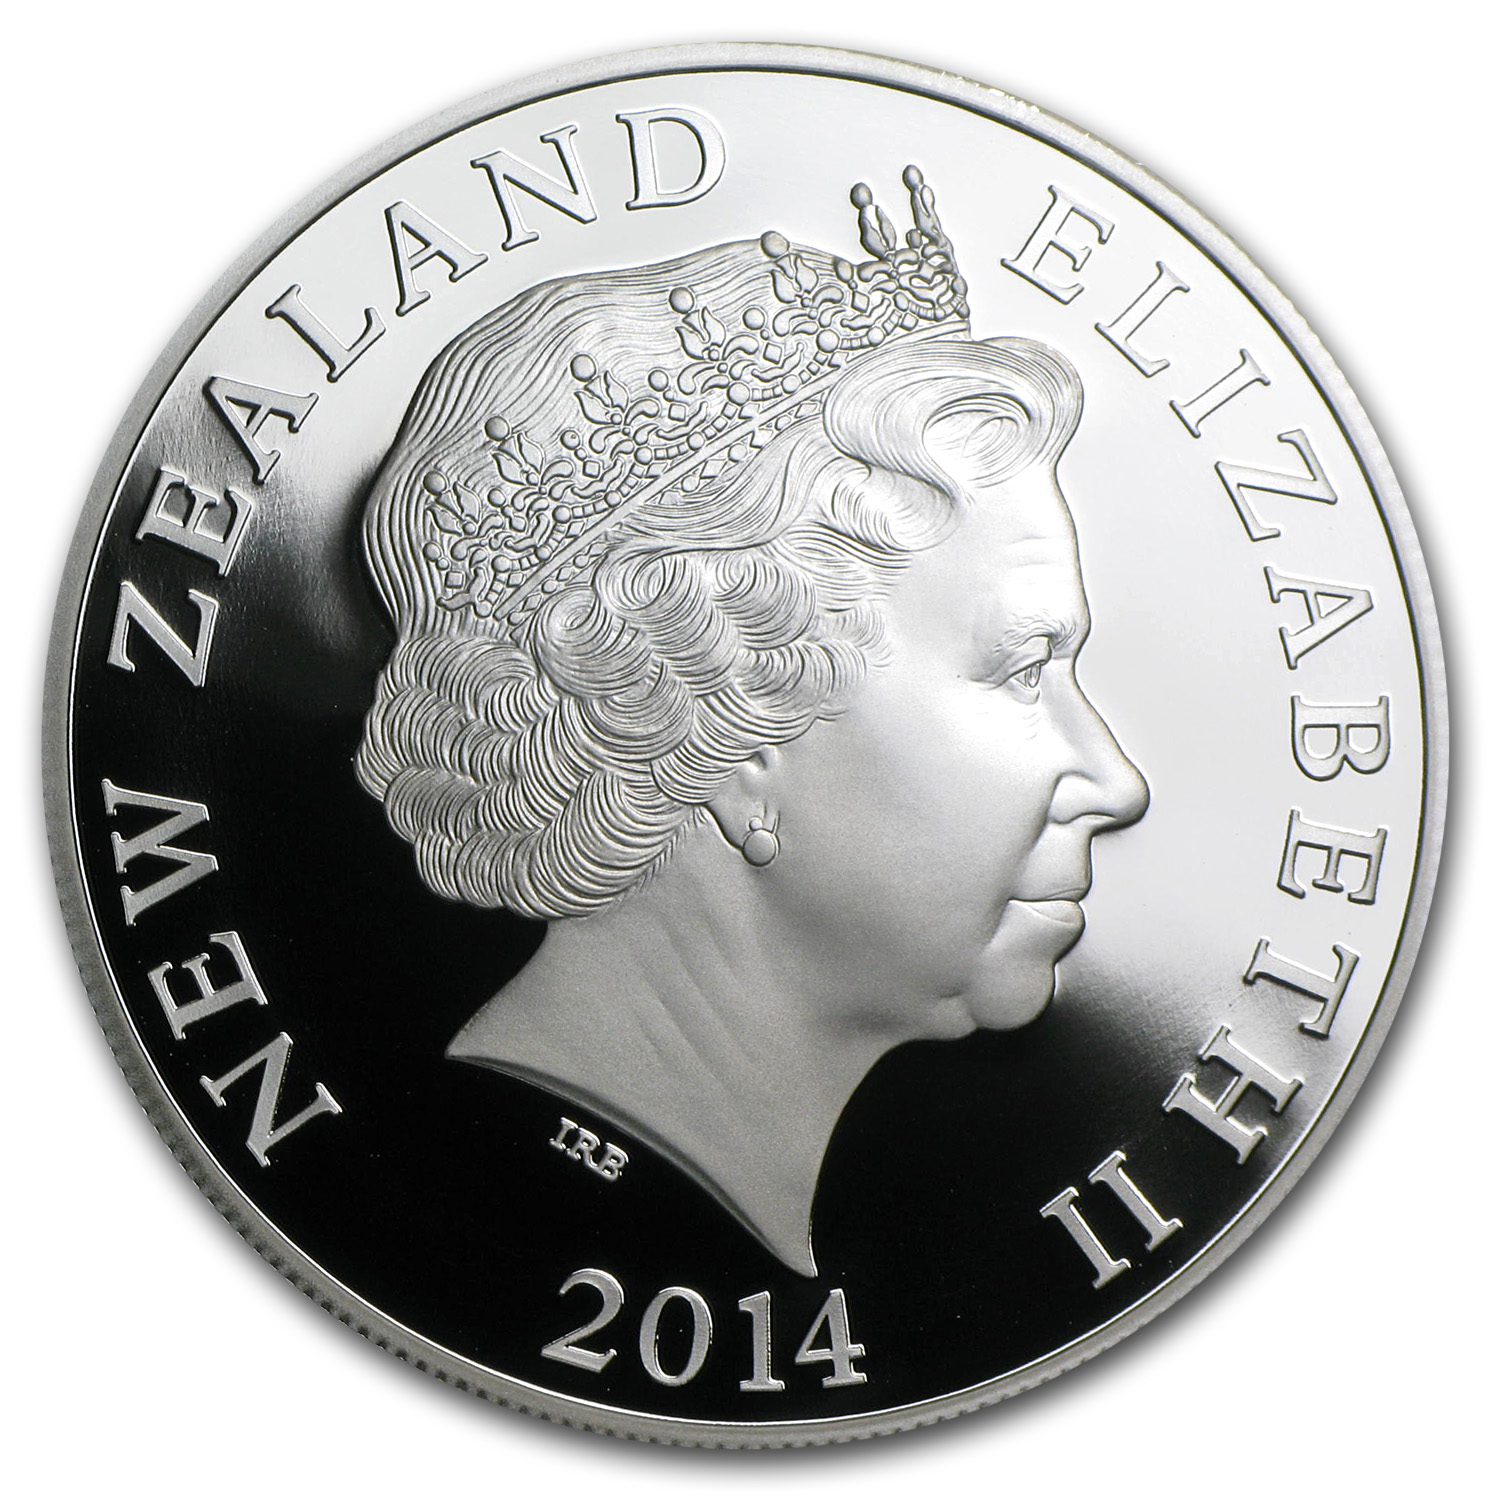 2014 1 oz Silver Proof New Zealand - Maori Art: Papatuanuku